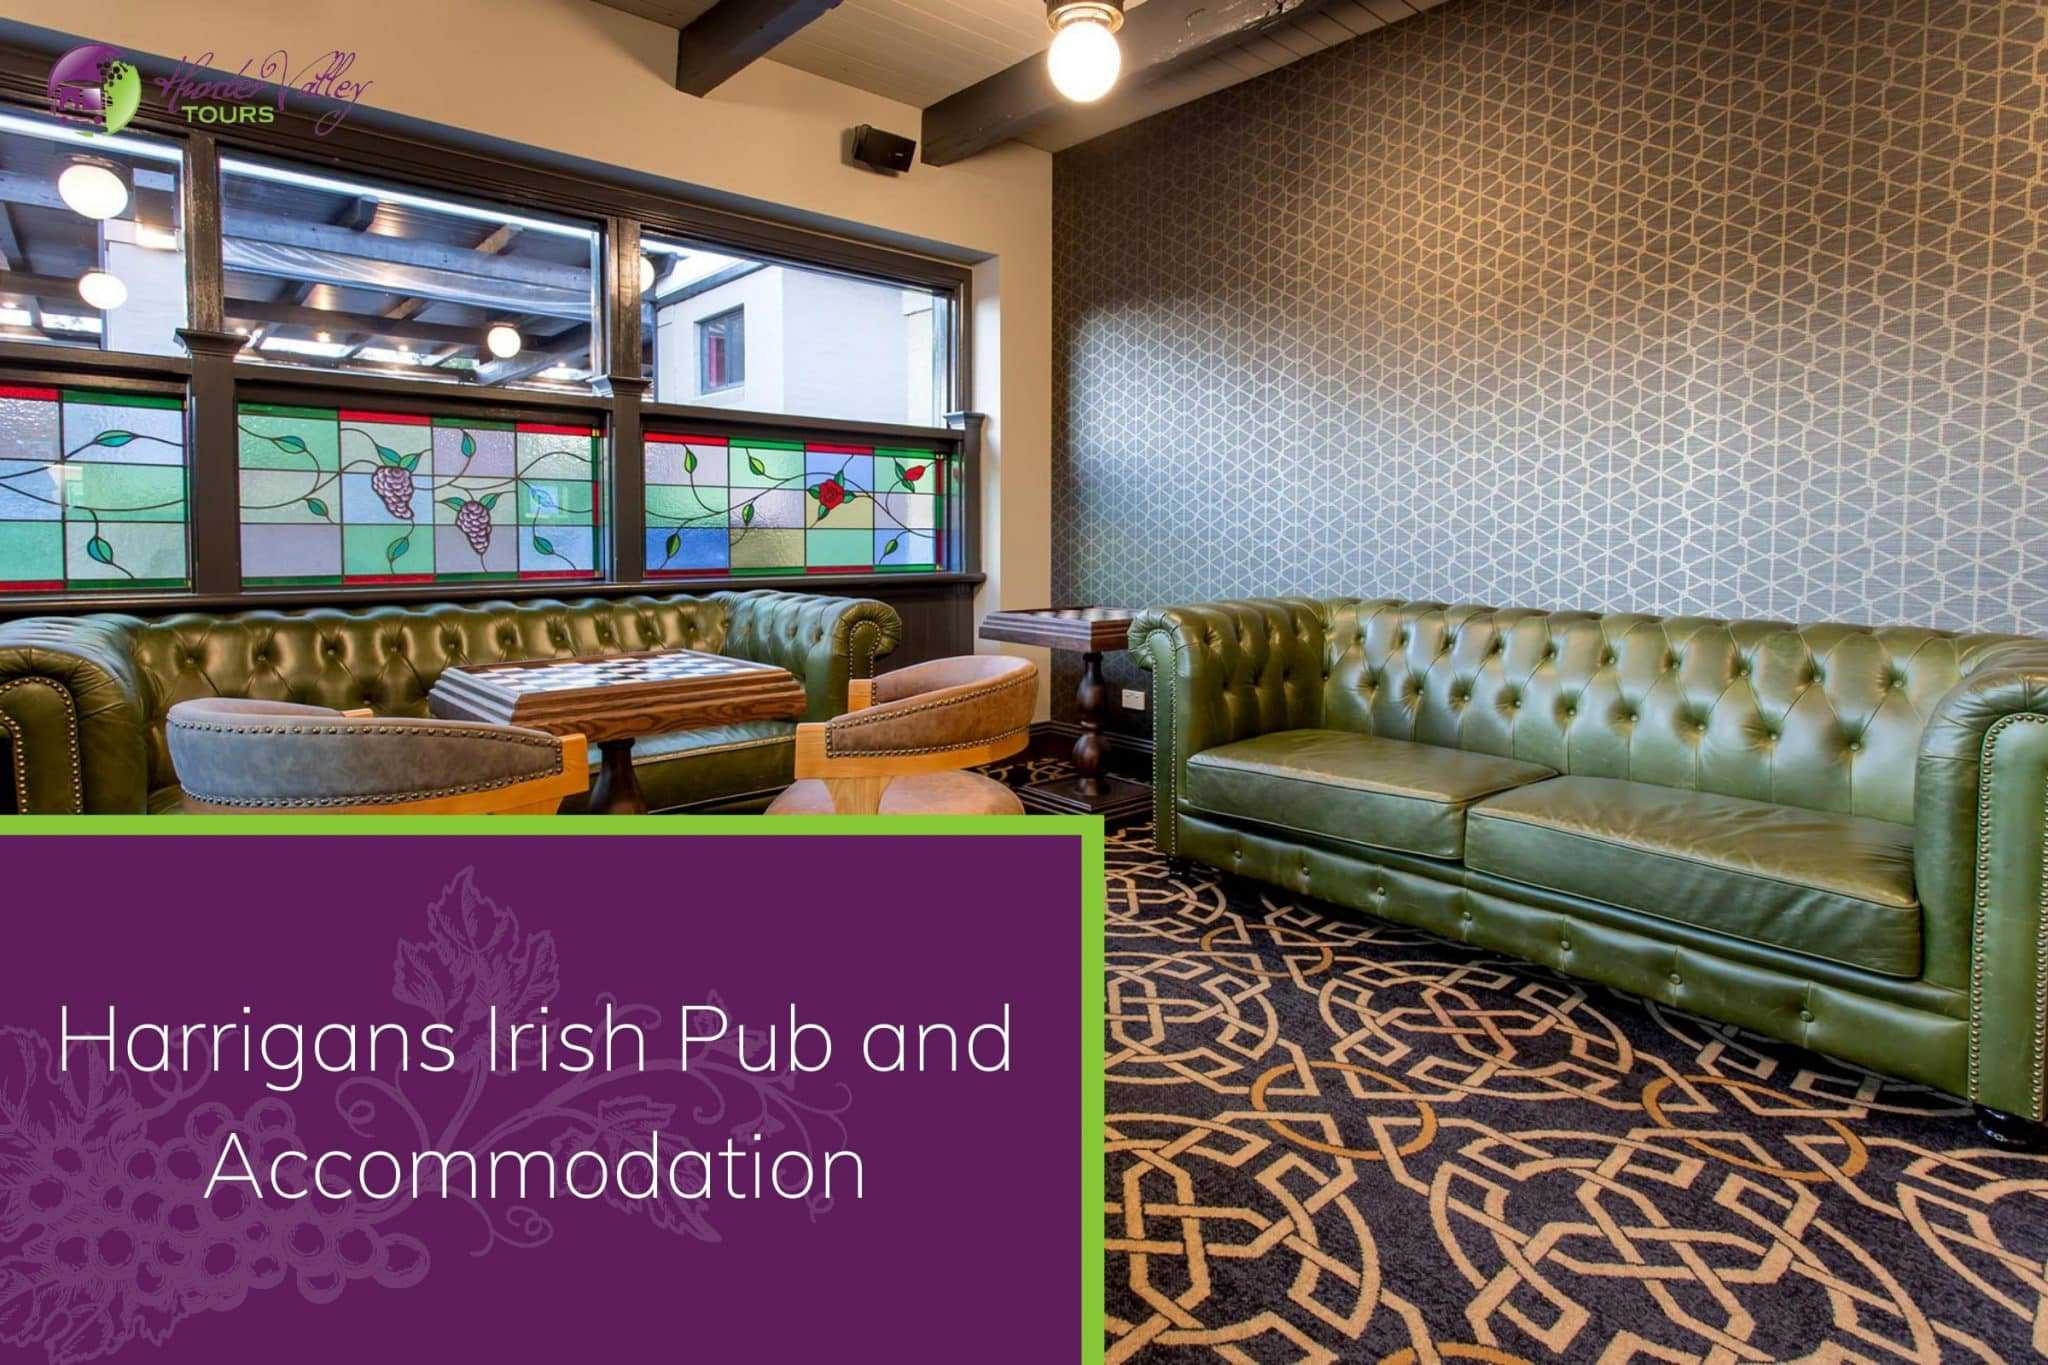 Harrigans Irish Pub and Accommodation